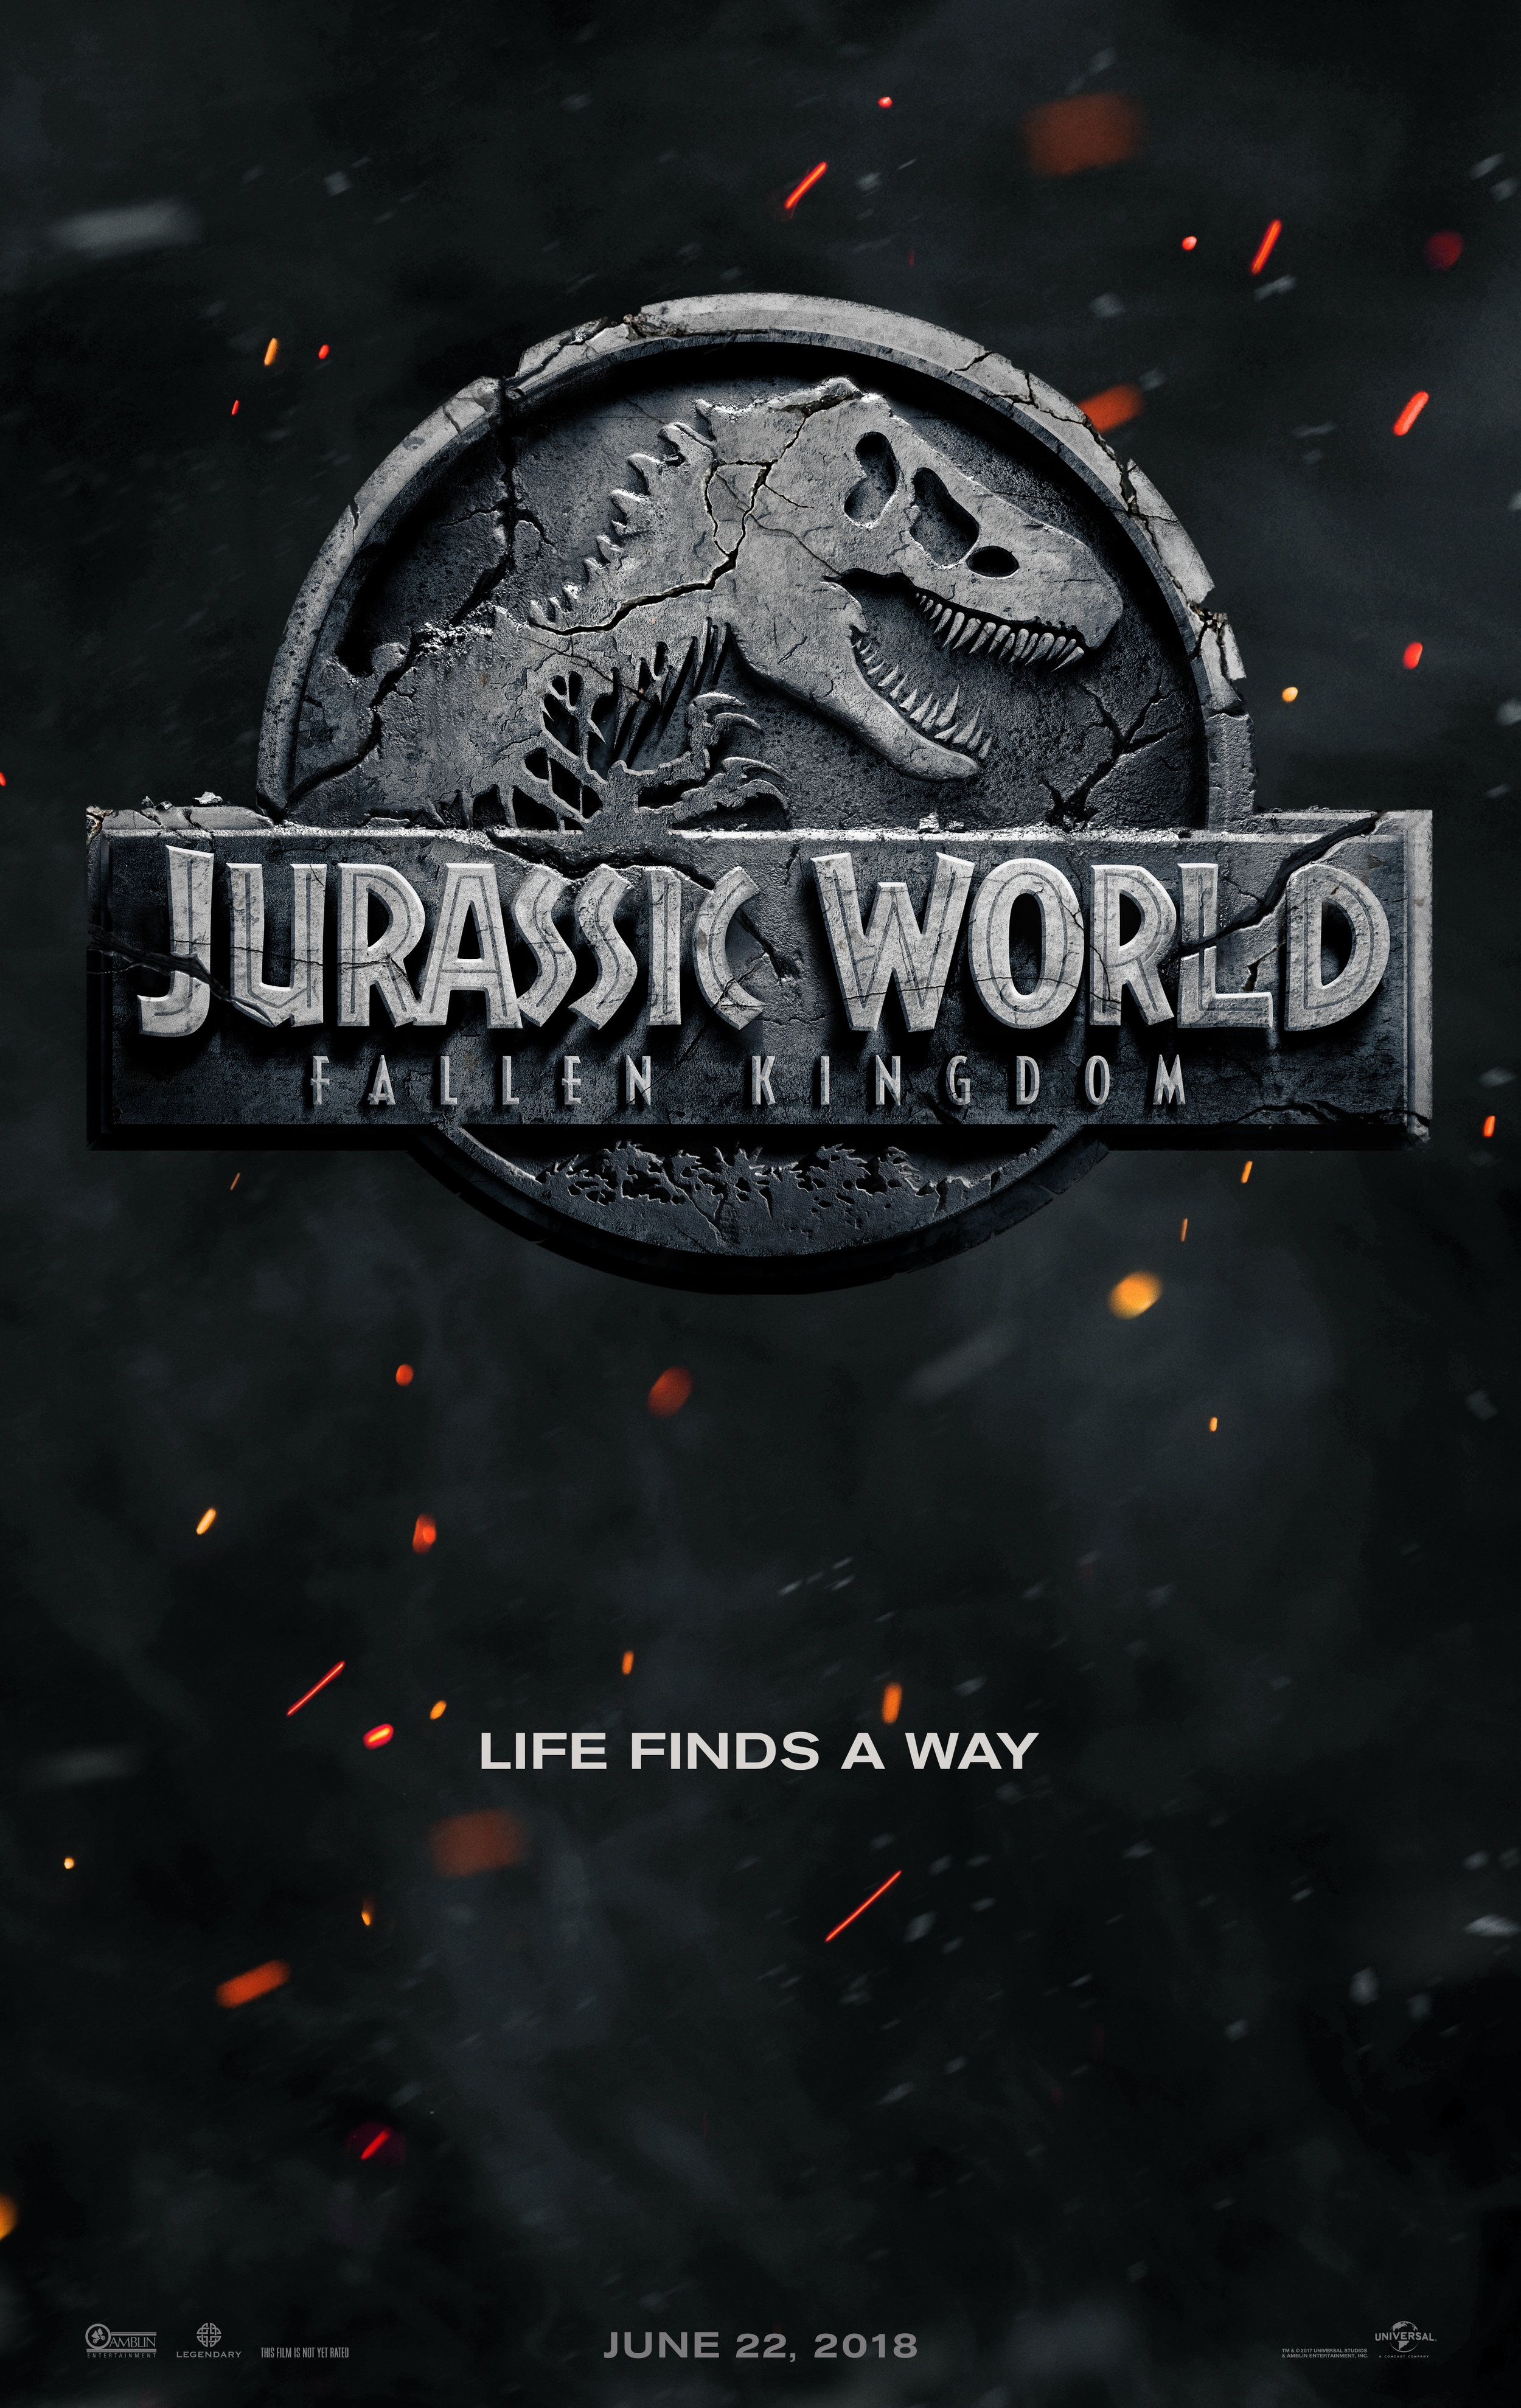 Jurassic World 2 Gets An Official Title And Teaser Poster Https Www Geekbroadside Com Blog 2017 6 22 Jur Jurassic World Movie Falling Kingdoms Kingdom Movie